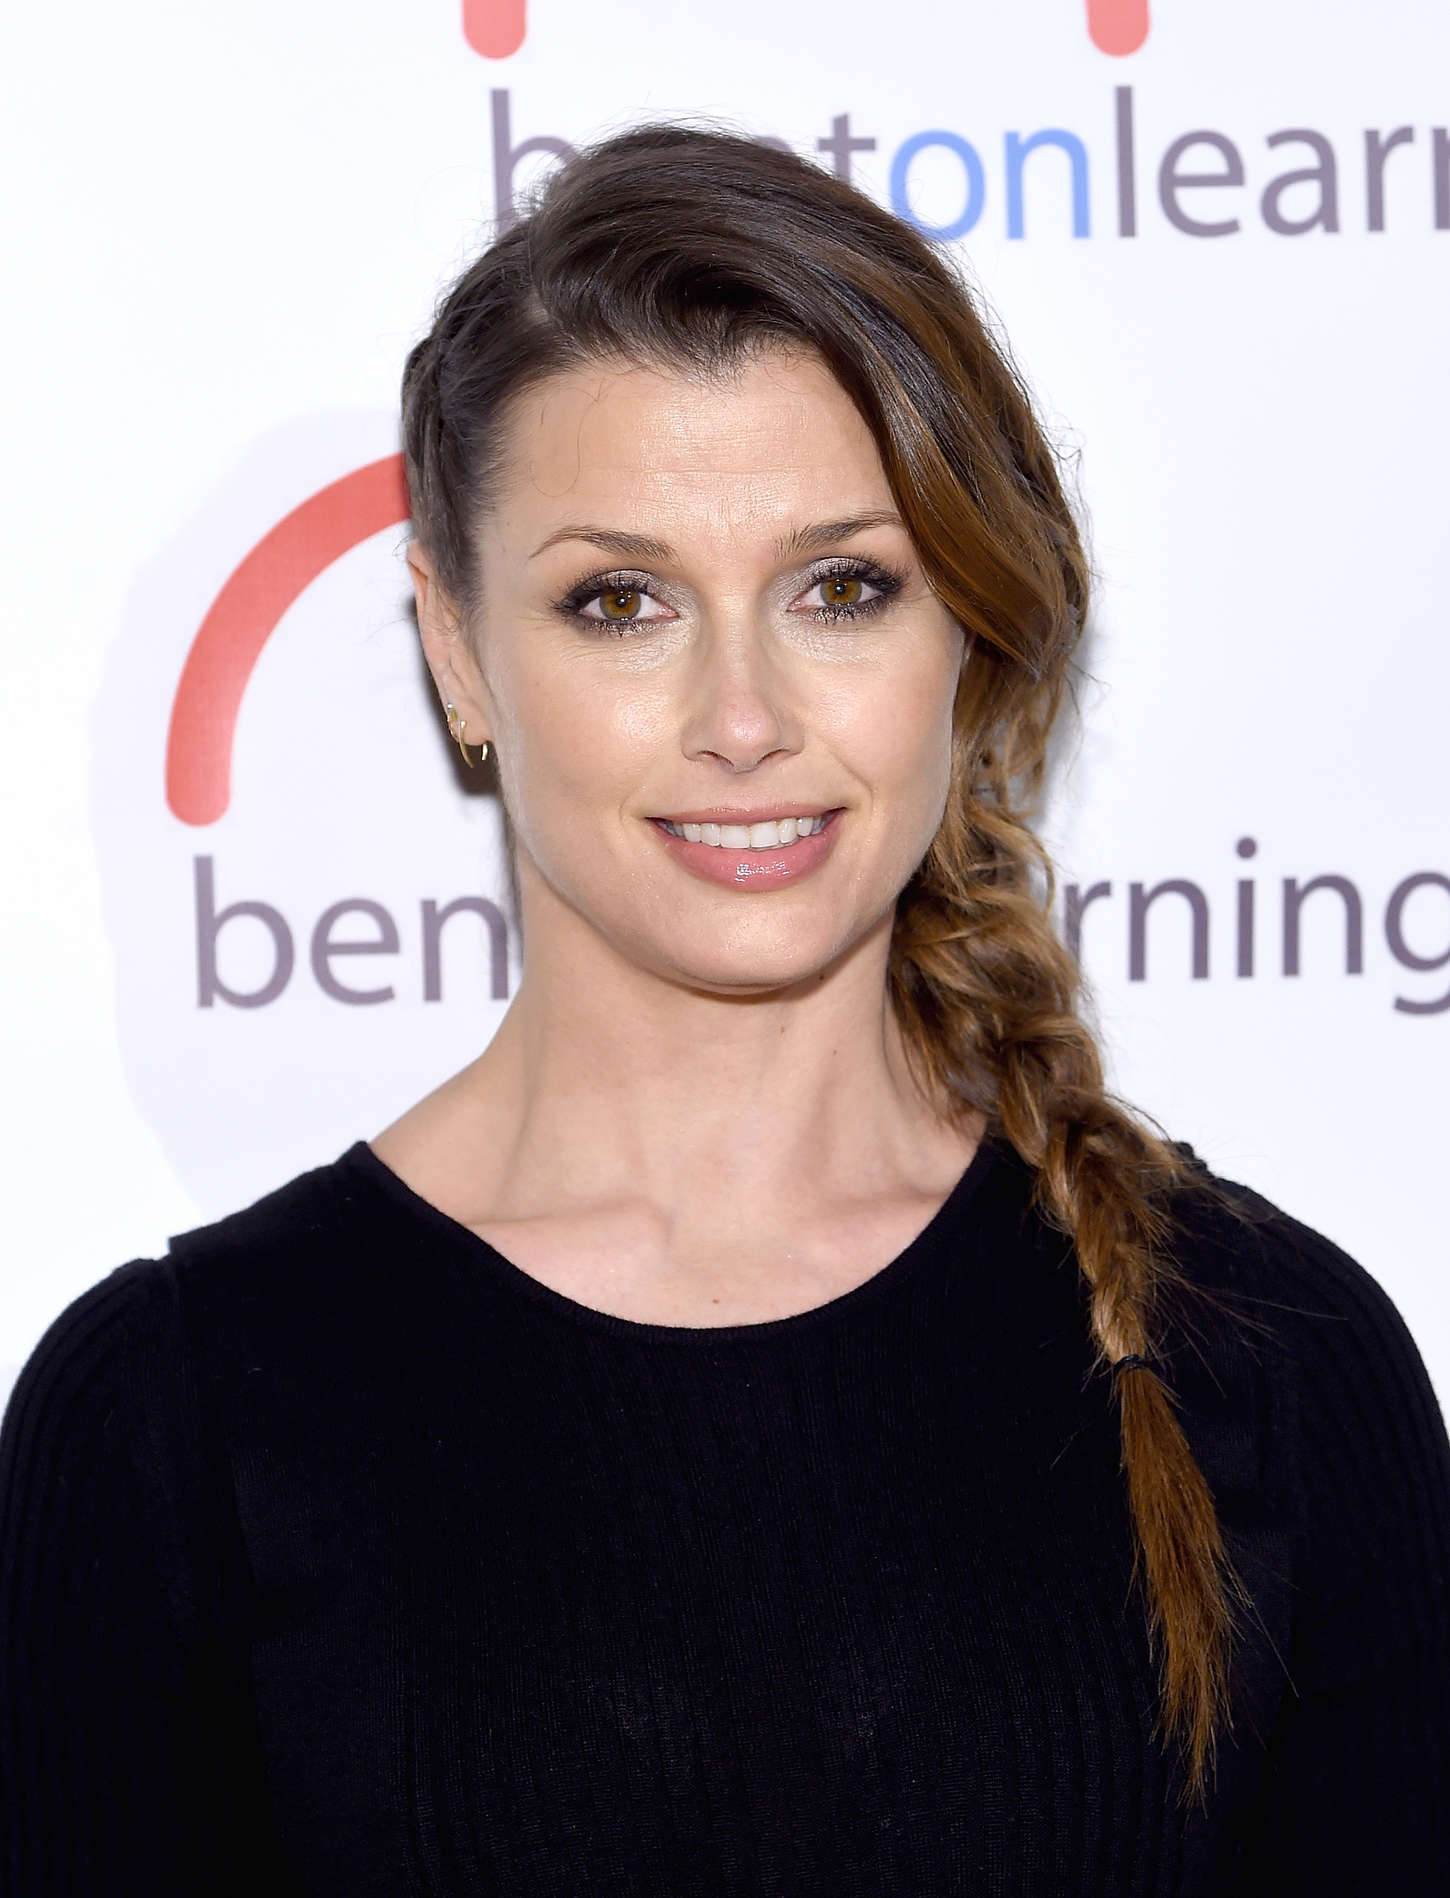 Bridget Moynahan Annual Bent On Learning Inspire! Gala in New York